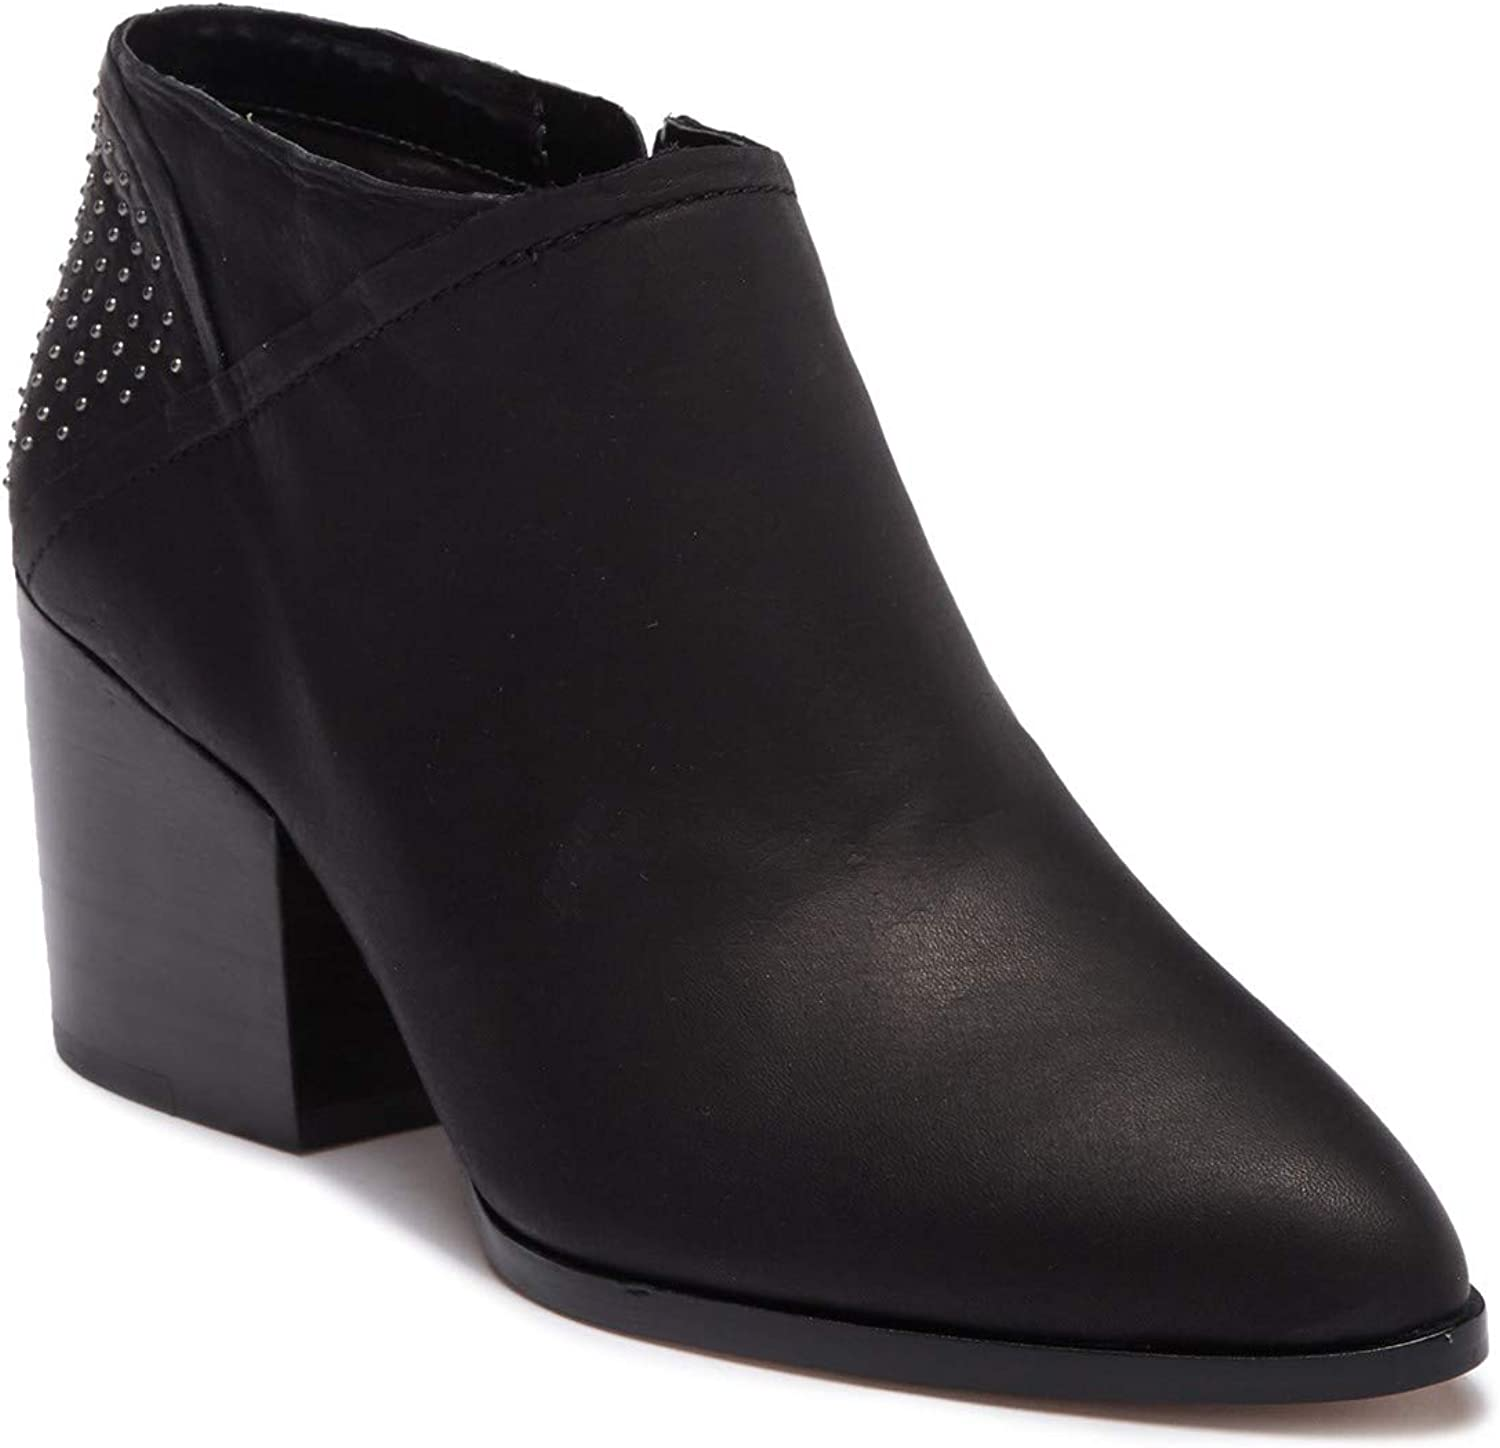 1.STATE Womens JELIN Leather Bootie Black